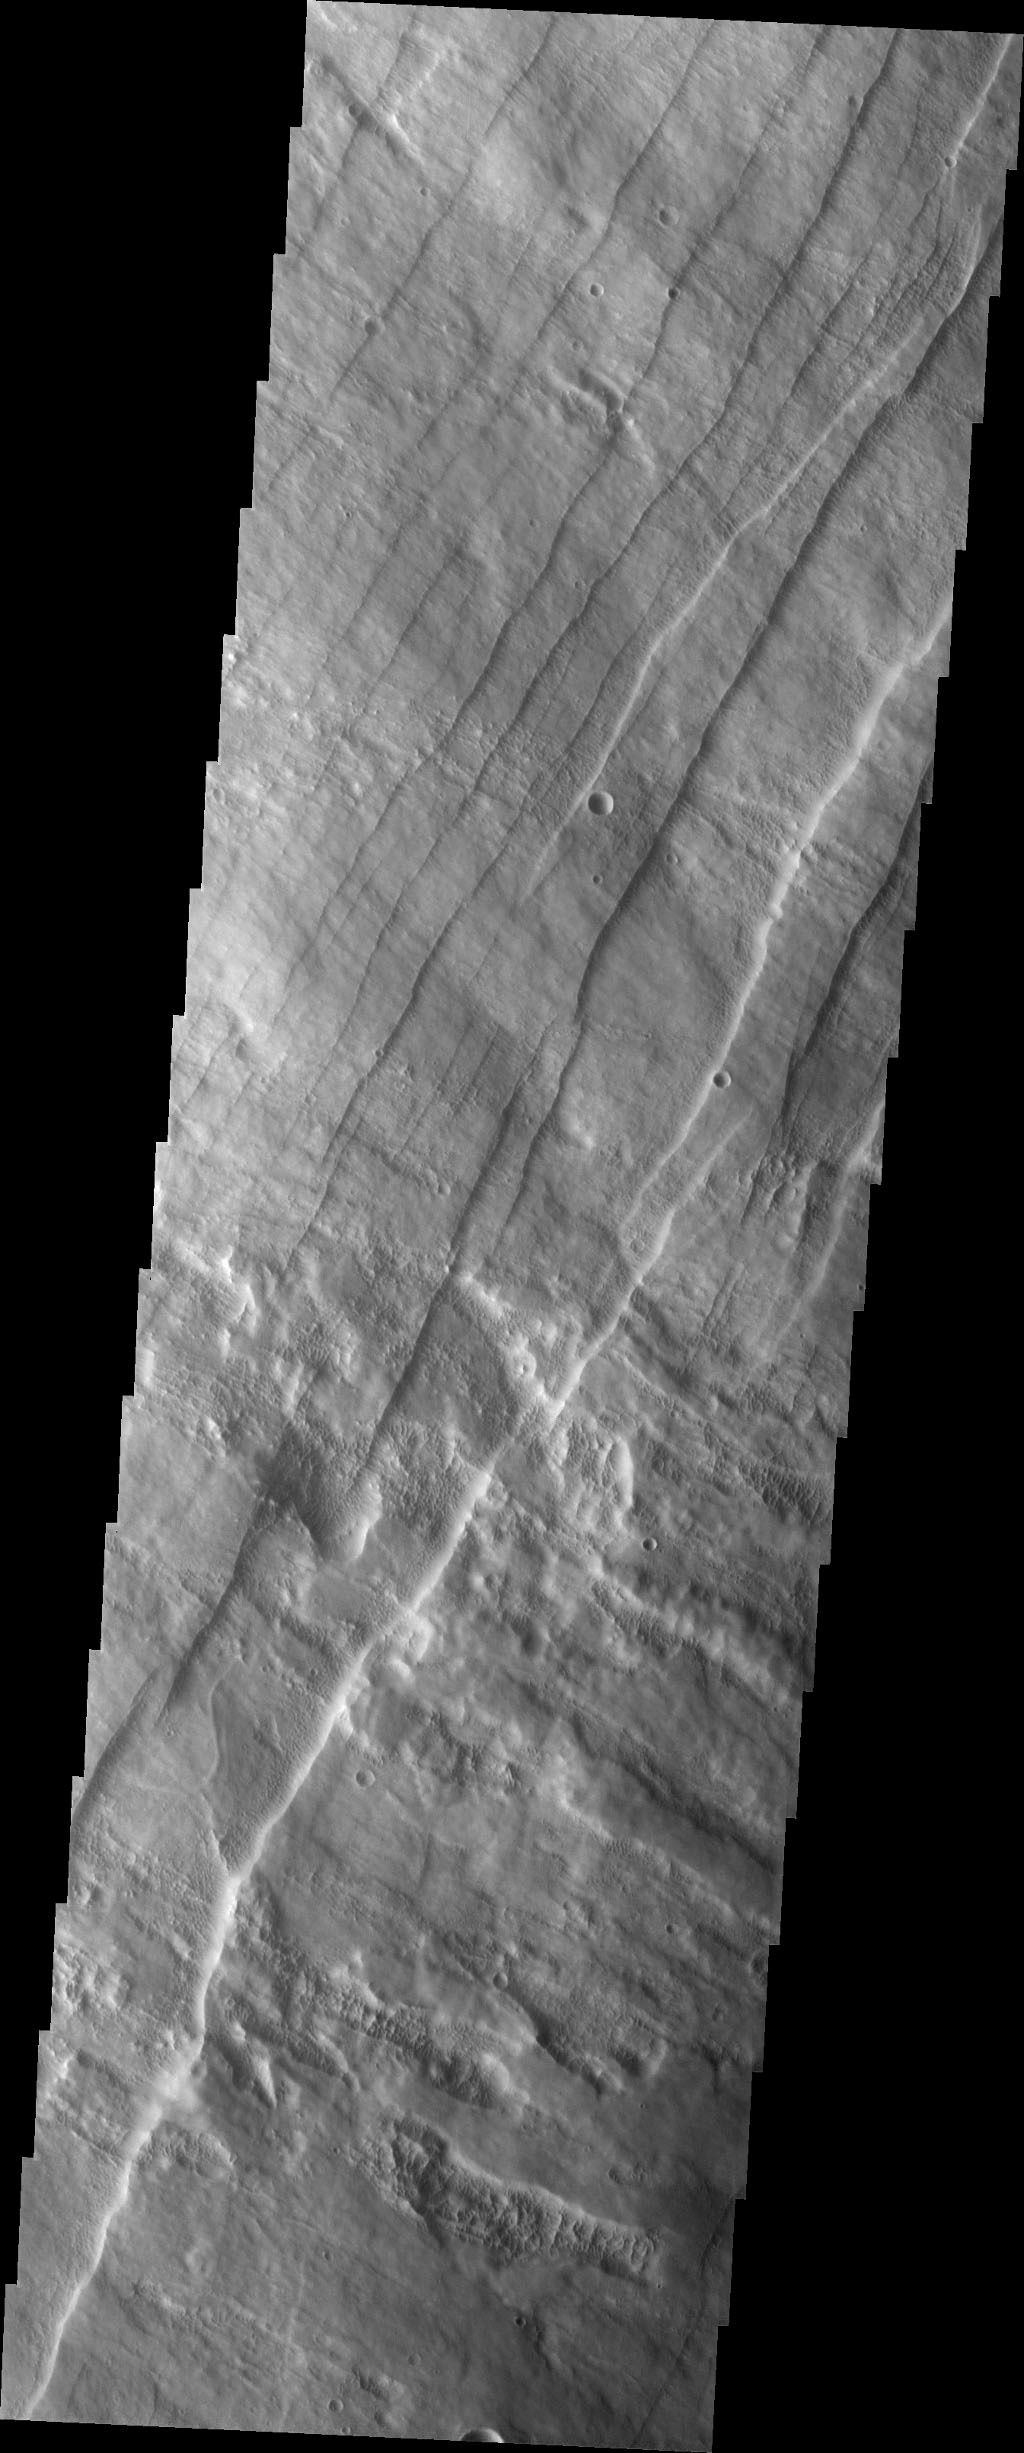 This image captured by NASA's 2001 Mars Odyssey spacecraft shows part of the western flank of Pavonis Mons. The linear features are faults. Faulting usually includes change of elevation, where blocks of material slide down the fault.